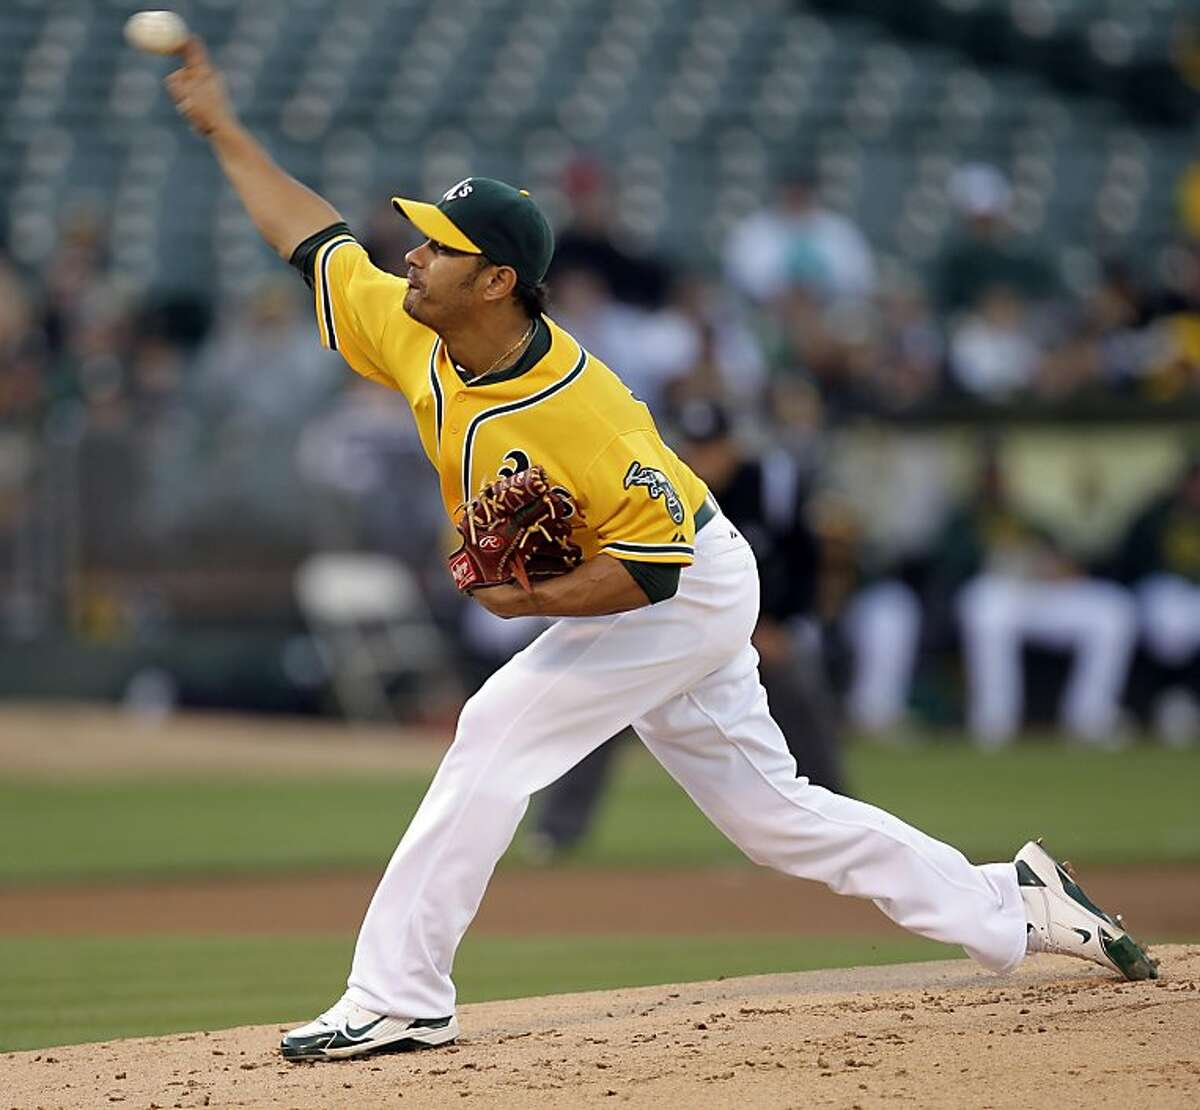 Oakland Athletics' Guillermo Moscoso pitches to the Florida Marlins during the first inning of a baseball game Wednesday, June 29, 2011, in Oakland, Calif.